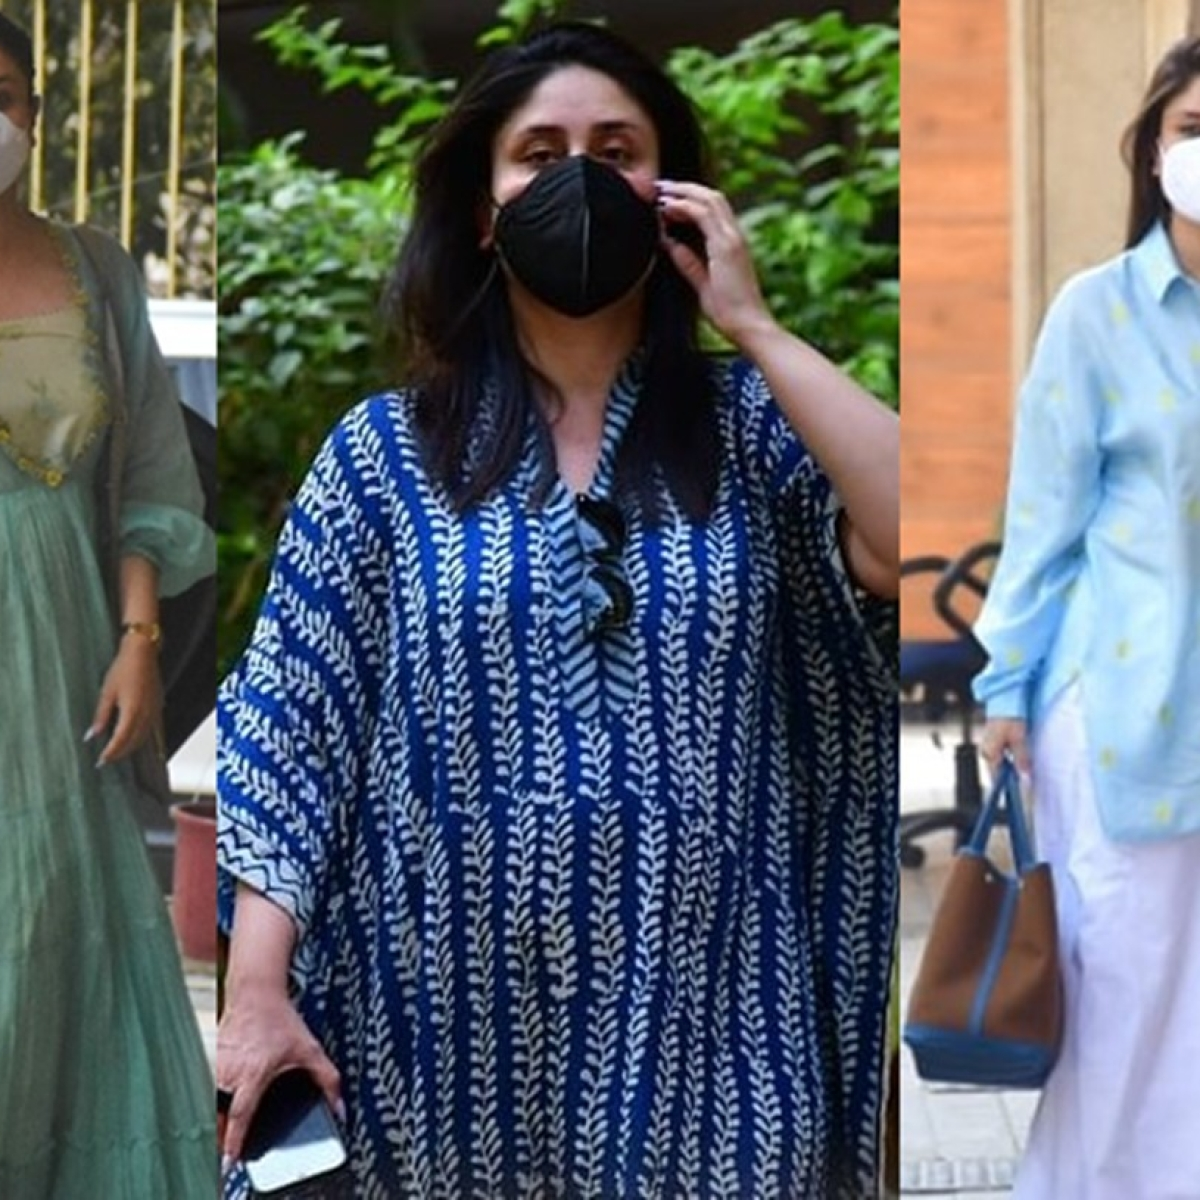 In Pics: Kareena Kapoor Khan continues to wear blue for a third time after welcoming newborn son